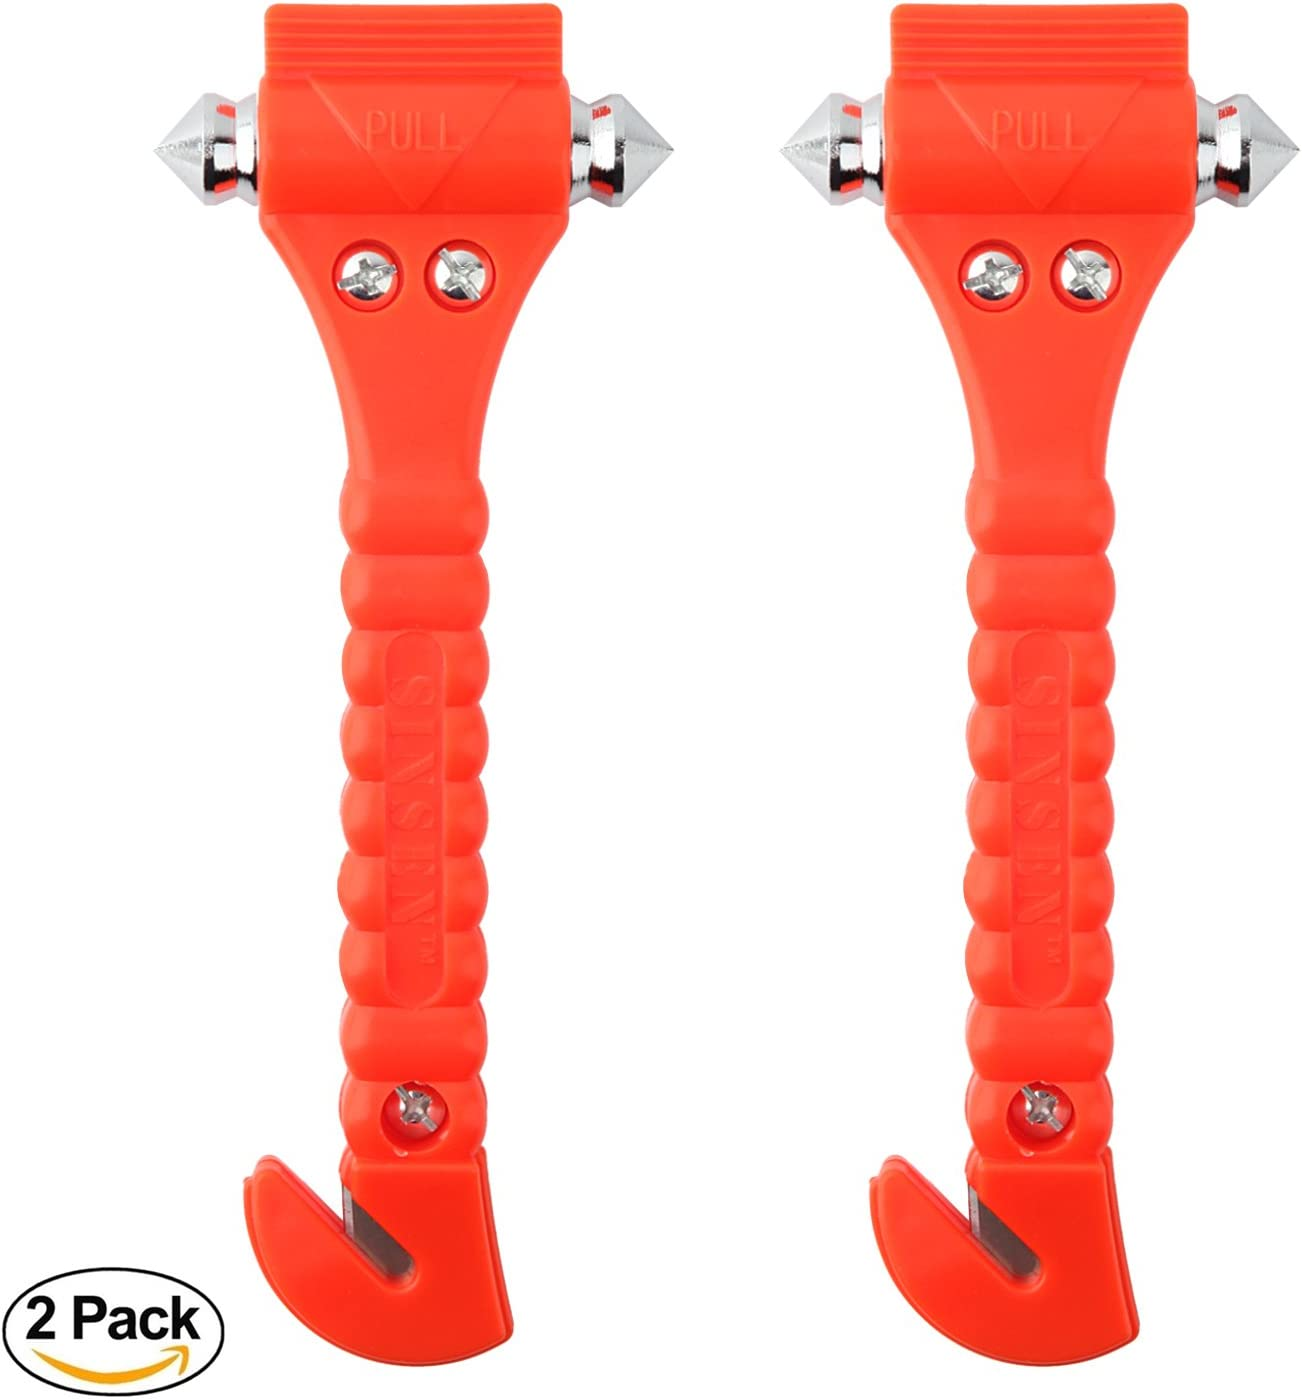 Car Safety Hammer Set of 2 Emergency Escape Tool Auto Car Window Glass Hammer Breaker and Seat Belt Cutter Escape 2-in-1 for Family Rescue & Auto Emergency Escape Tools (2 PCS): Automotive